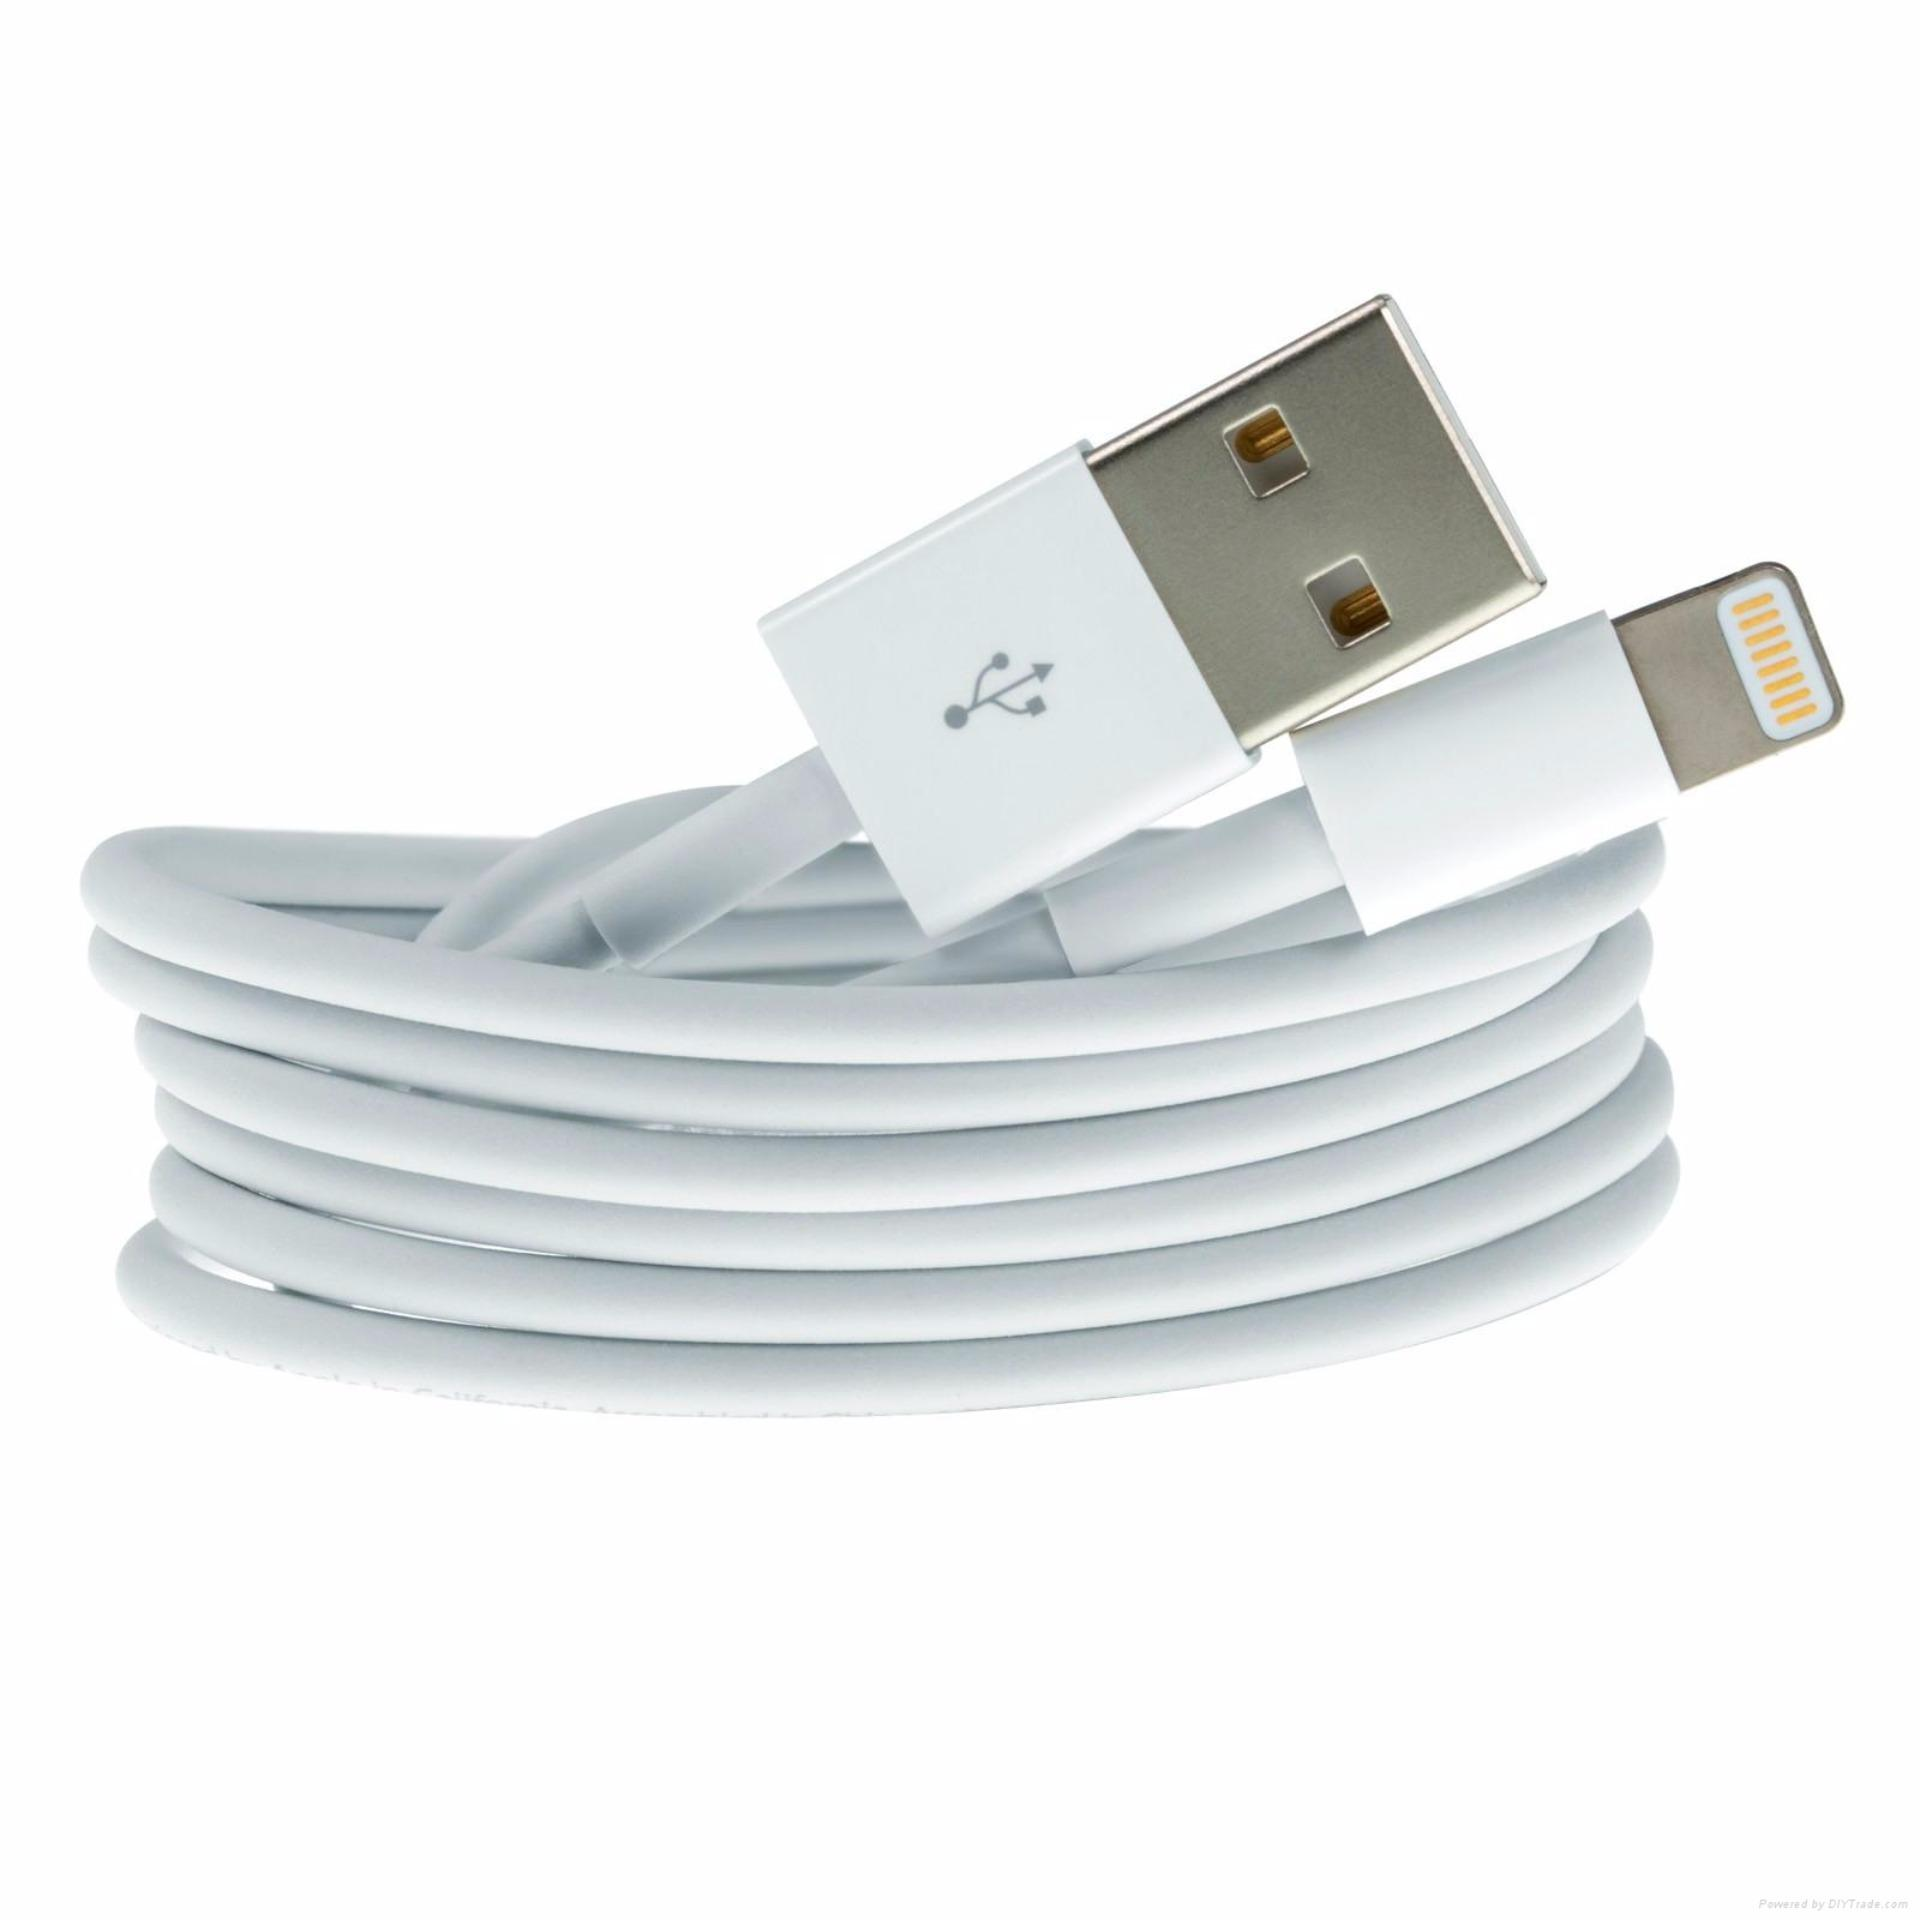 Beli Apple Lighting To Usb Cable Kable Data Iphone 5 Original Baru